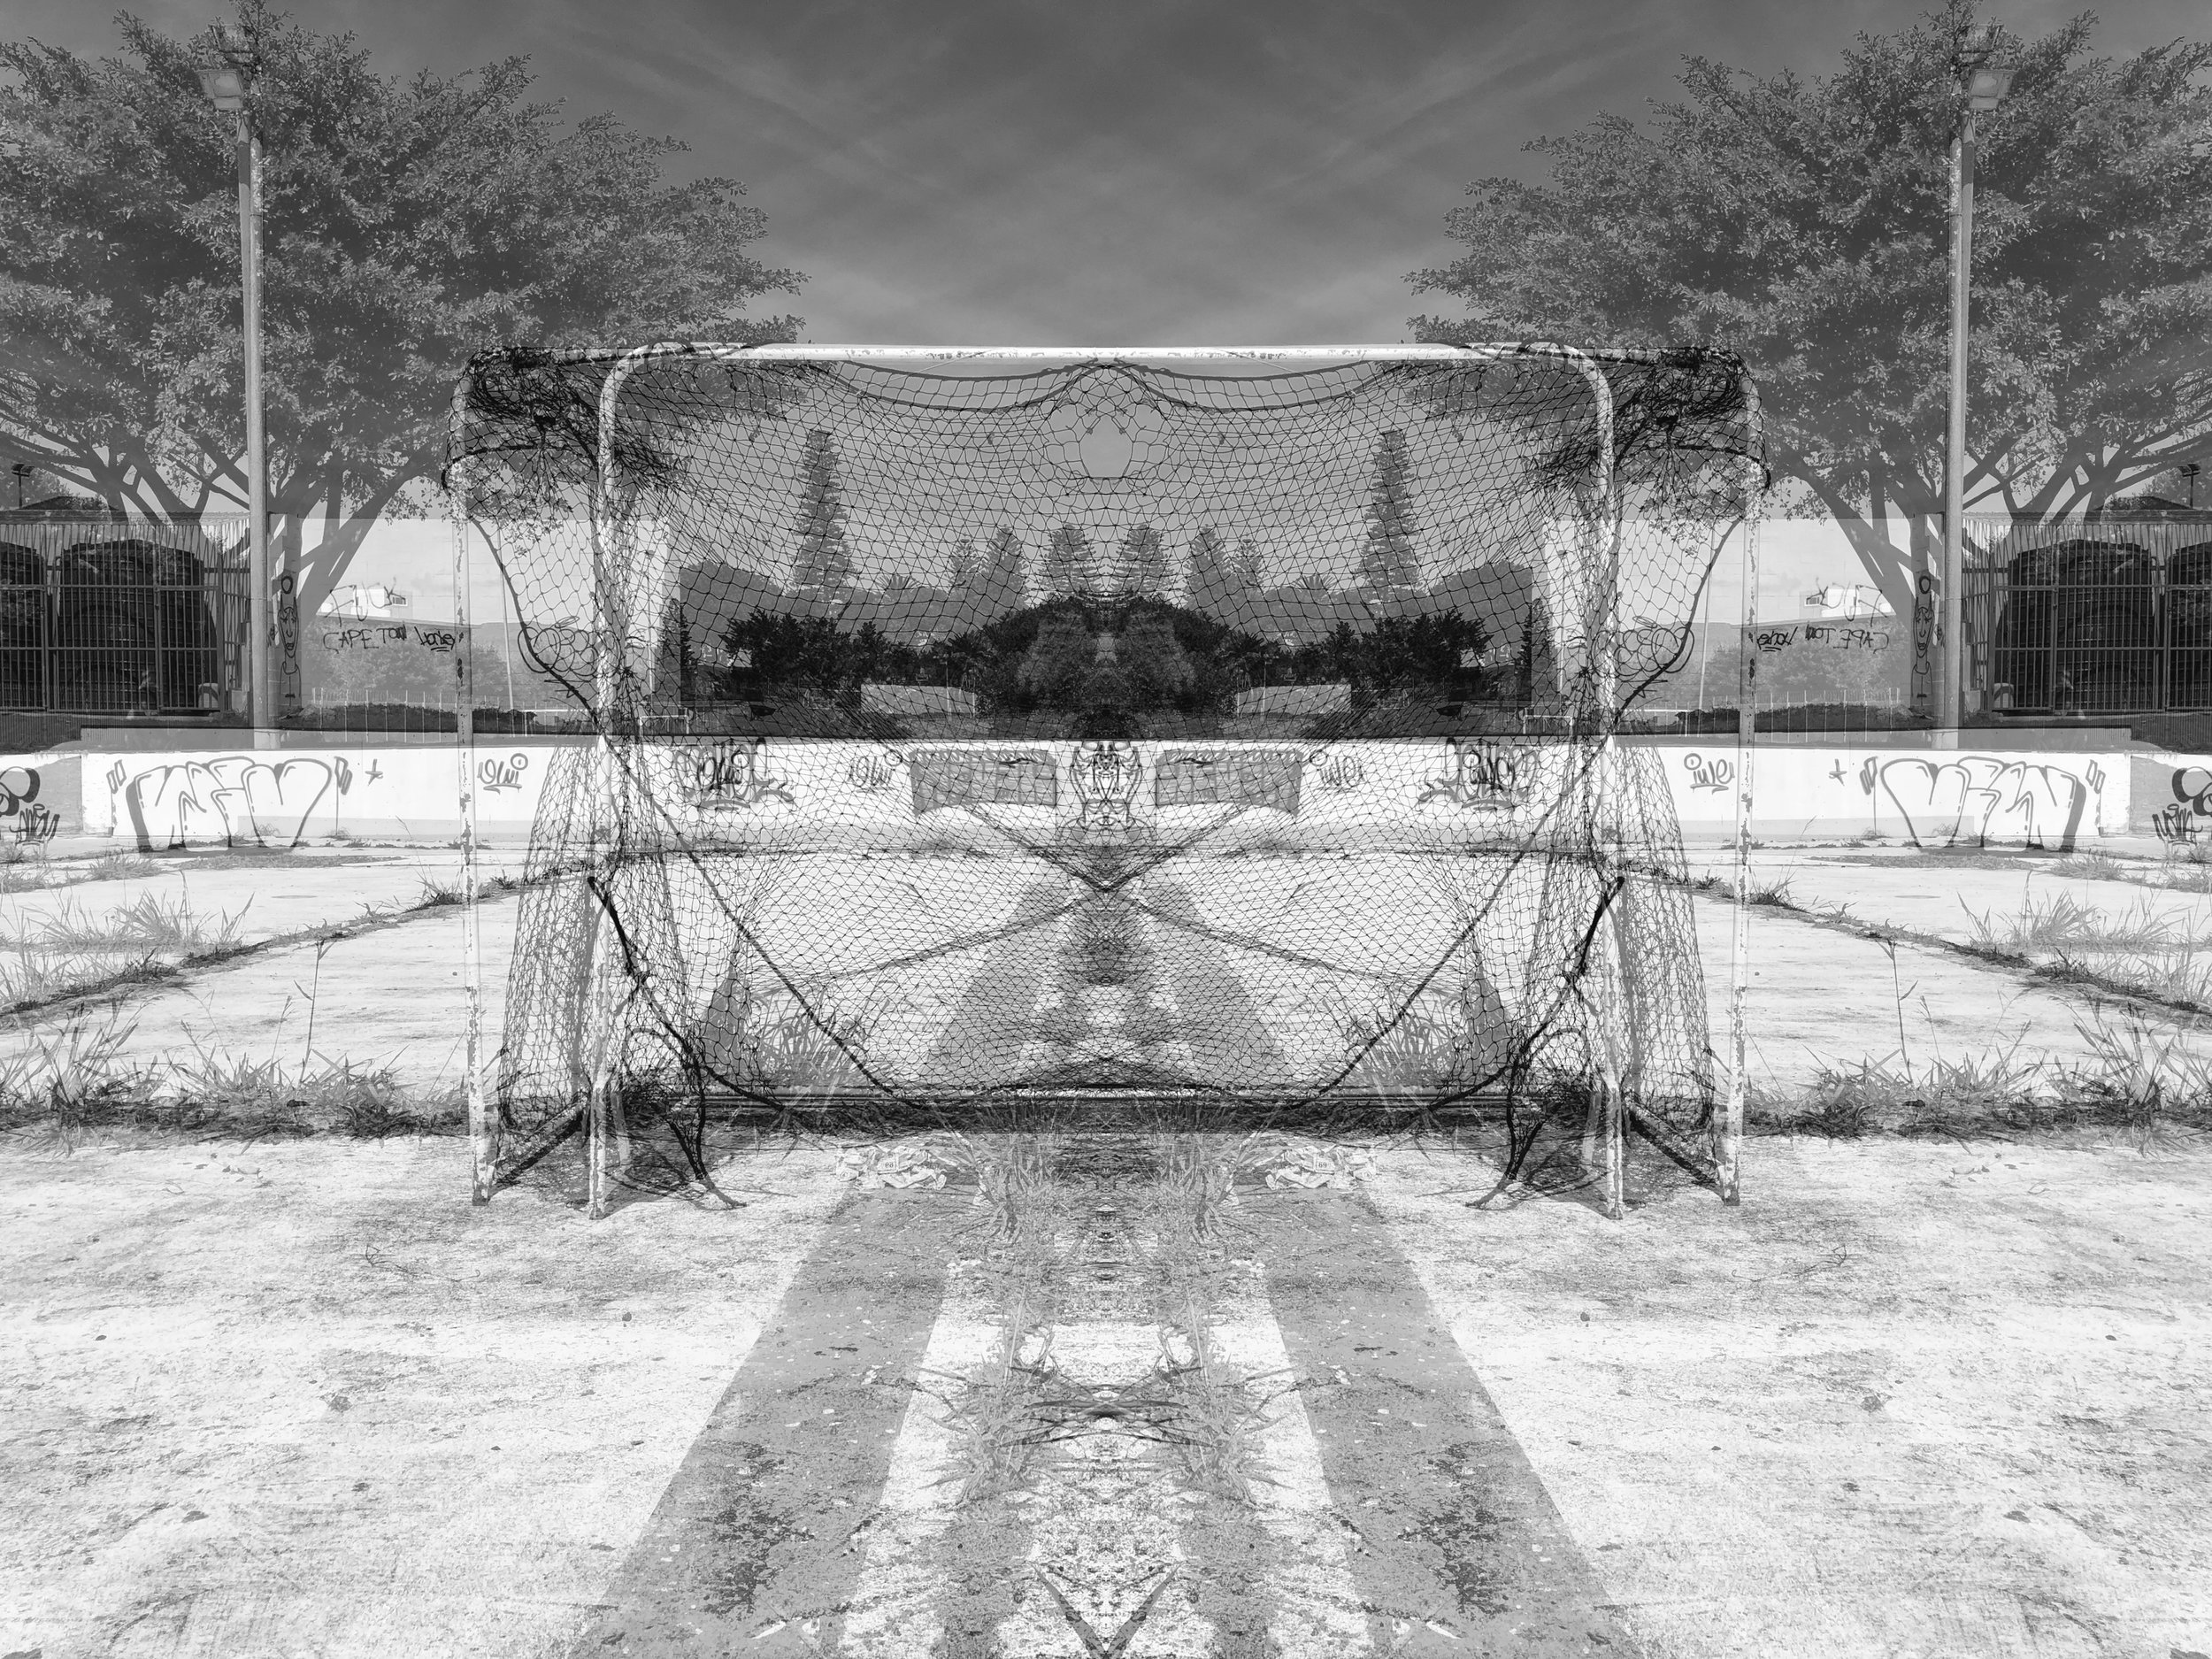 Playground , Rosebank, 2019  Series:  A Foreign Land   Silver print Dibond  300 x 400mm  Edition 3 + 1 AP  Signed, dated and numbered in lower margin; artist's stamp on verso  © Alastair Whitton  Acquisitions / enquiries: gallery@barnardgallery.com